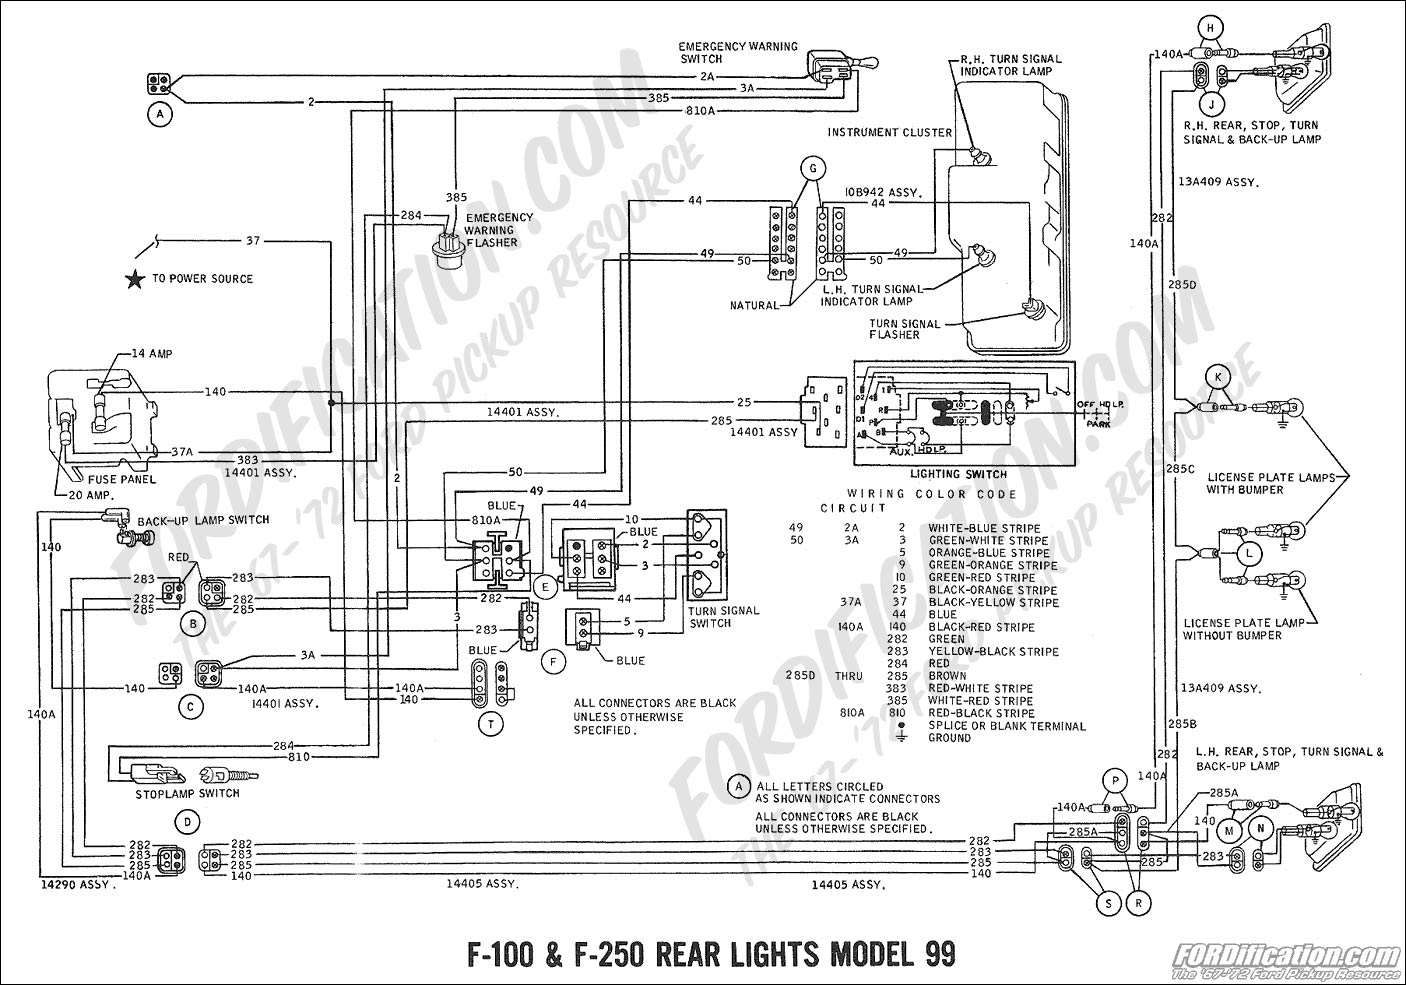 Ford 1710 Parts Diagram, Ford, Free Engine Image For User